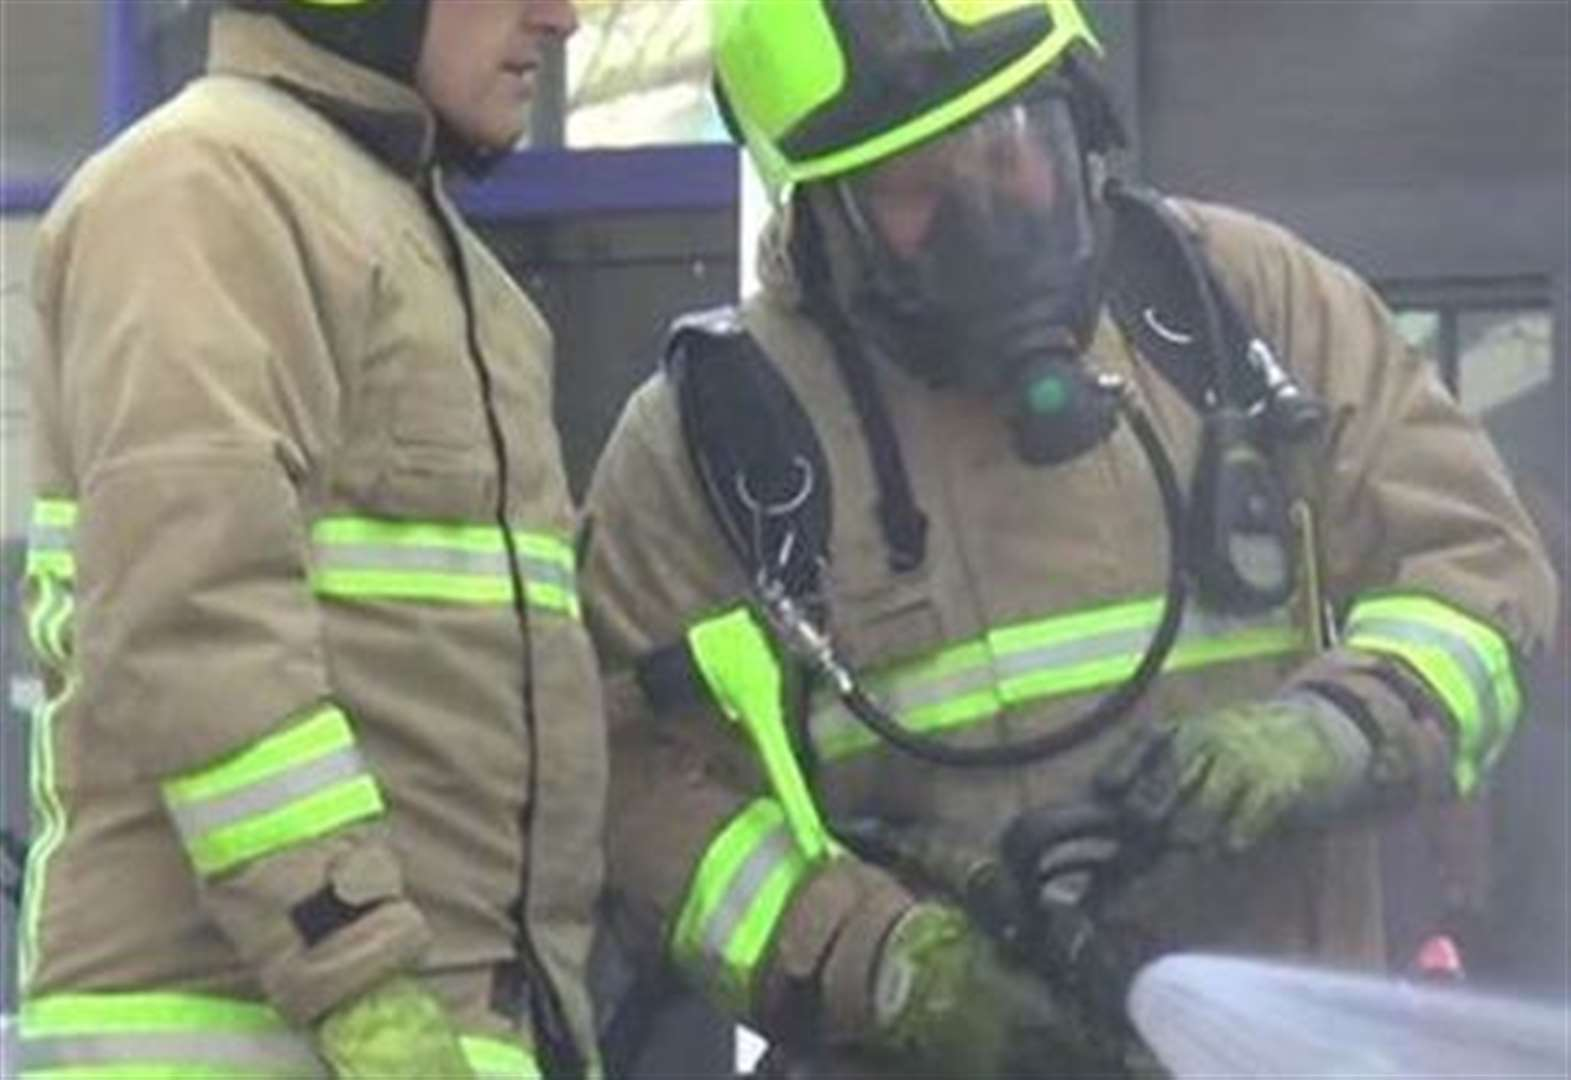 Woman treated for smoke inhalation after iron sparks blaze